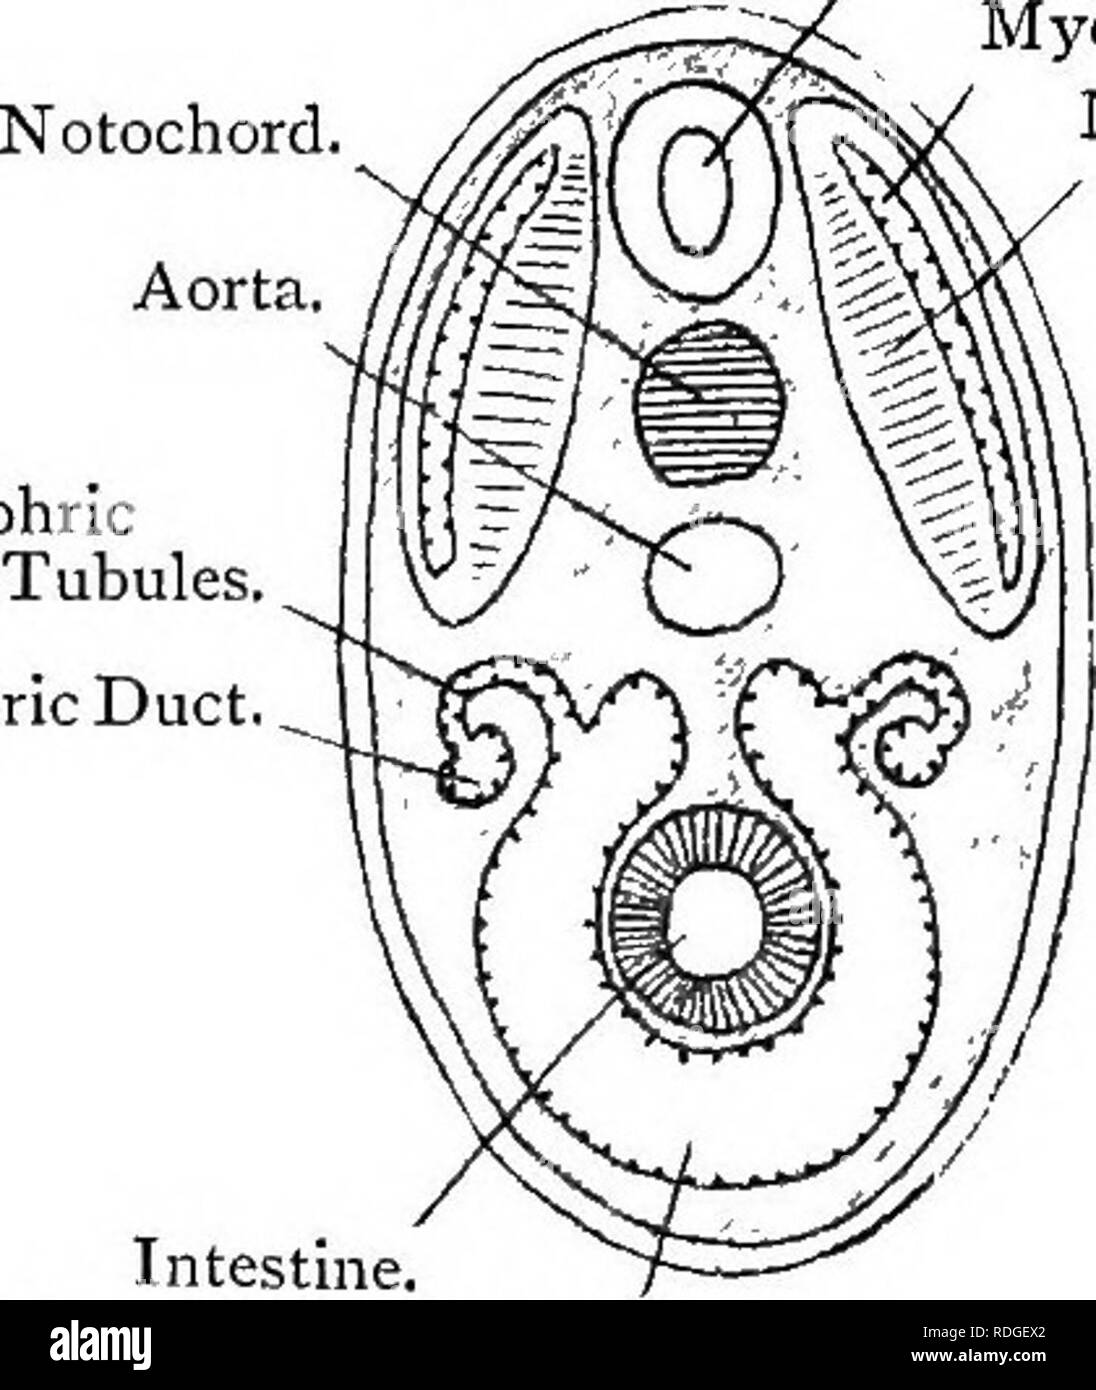 elementary text book of zoology 24 chord at a ivity of the myotome Thoracic and Abdominal Cavity 24 chord at a ivity of the myotome early disappears and the ventral lement alone persists as a continuous perivisceral cavity fig 306